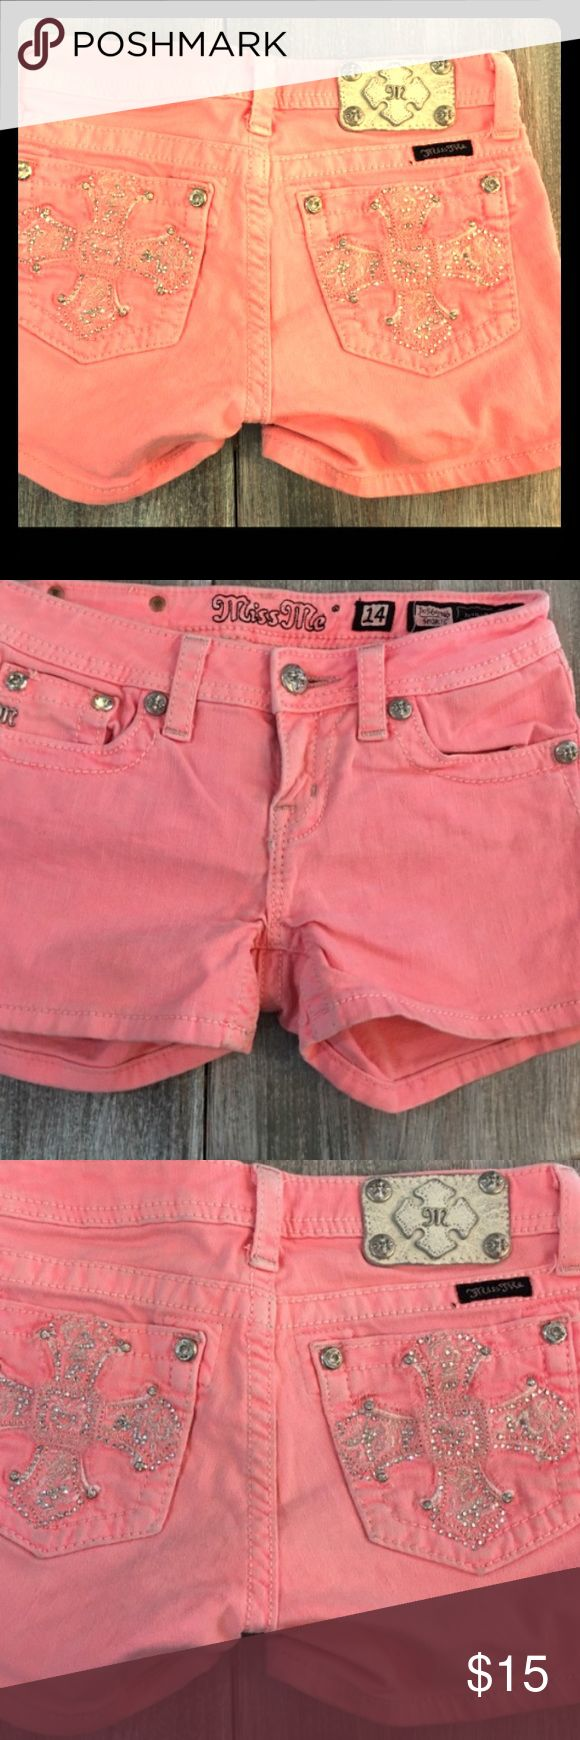 BLING Hot pink little girls size 14 Miss Ne shorts Good condition pretty little girls Miss Me shorts. Only worn a couple of times. No missing buttons. Smoke free home!! Size 14 Miss Me Bottoms Shorts